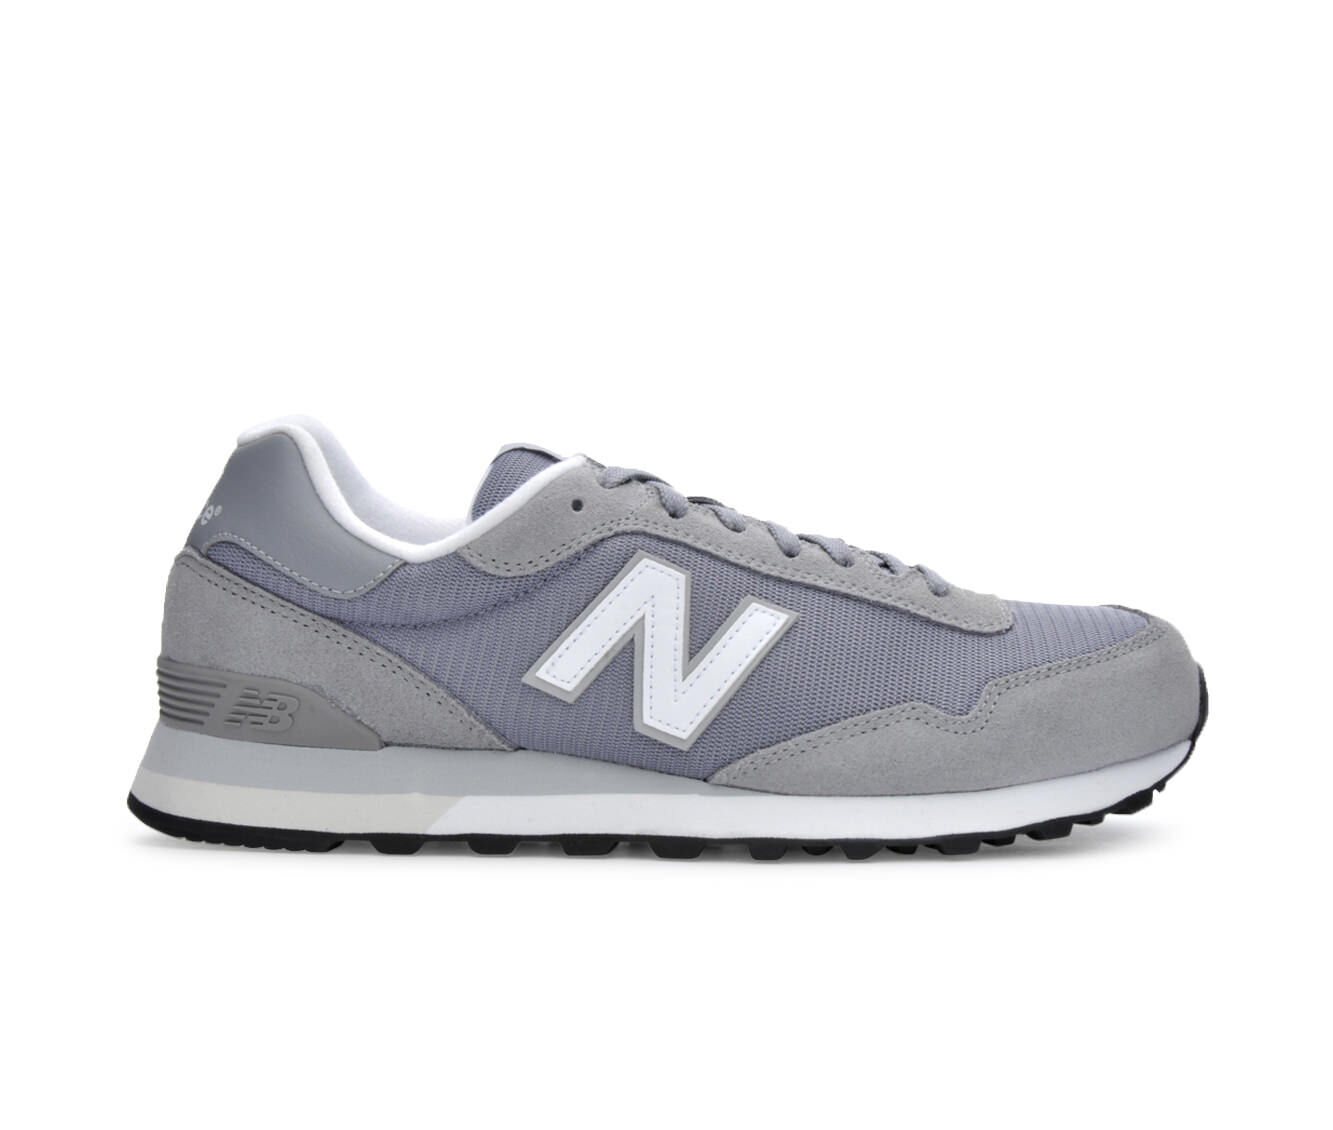 Men's New Balance ML515 Retro Sneakers Gry/Wht/Blk